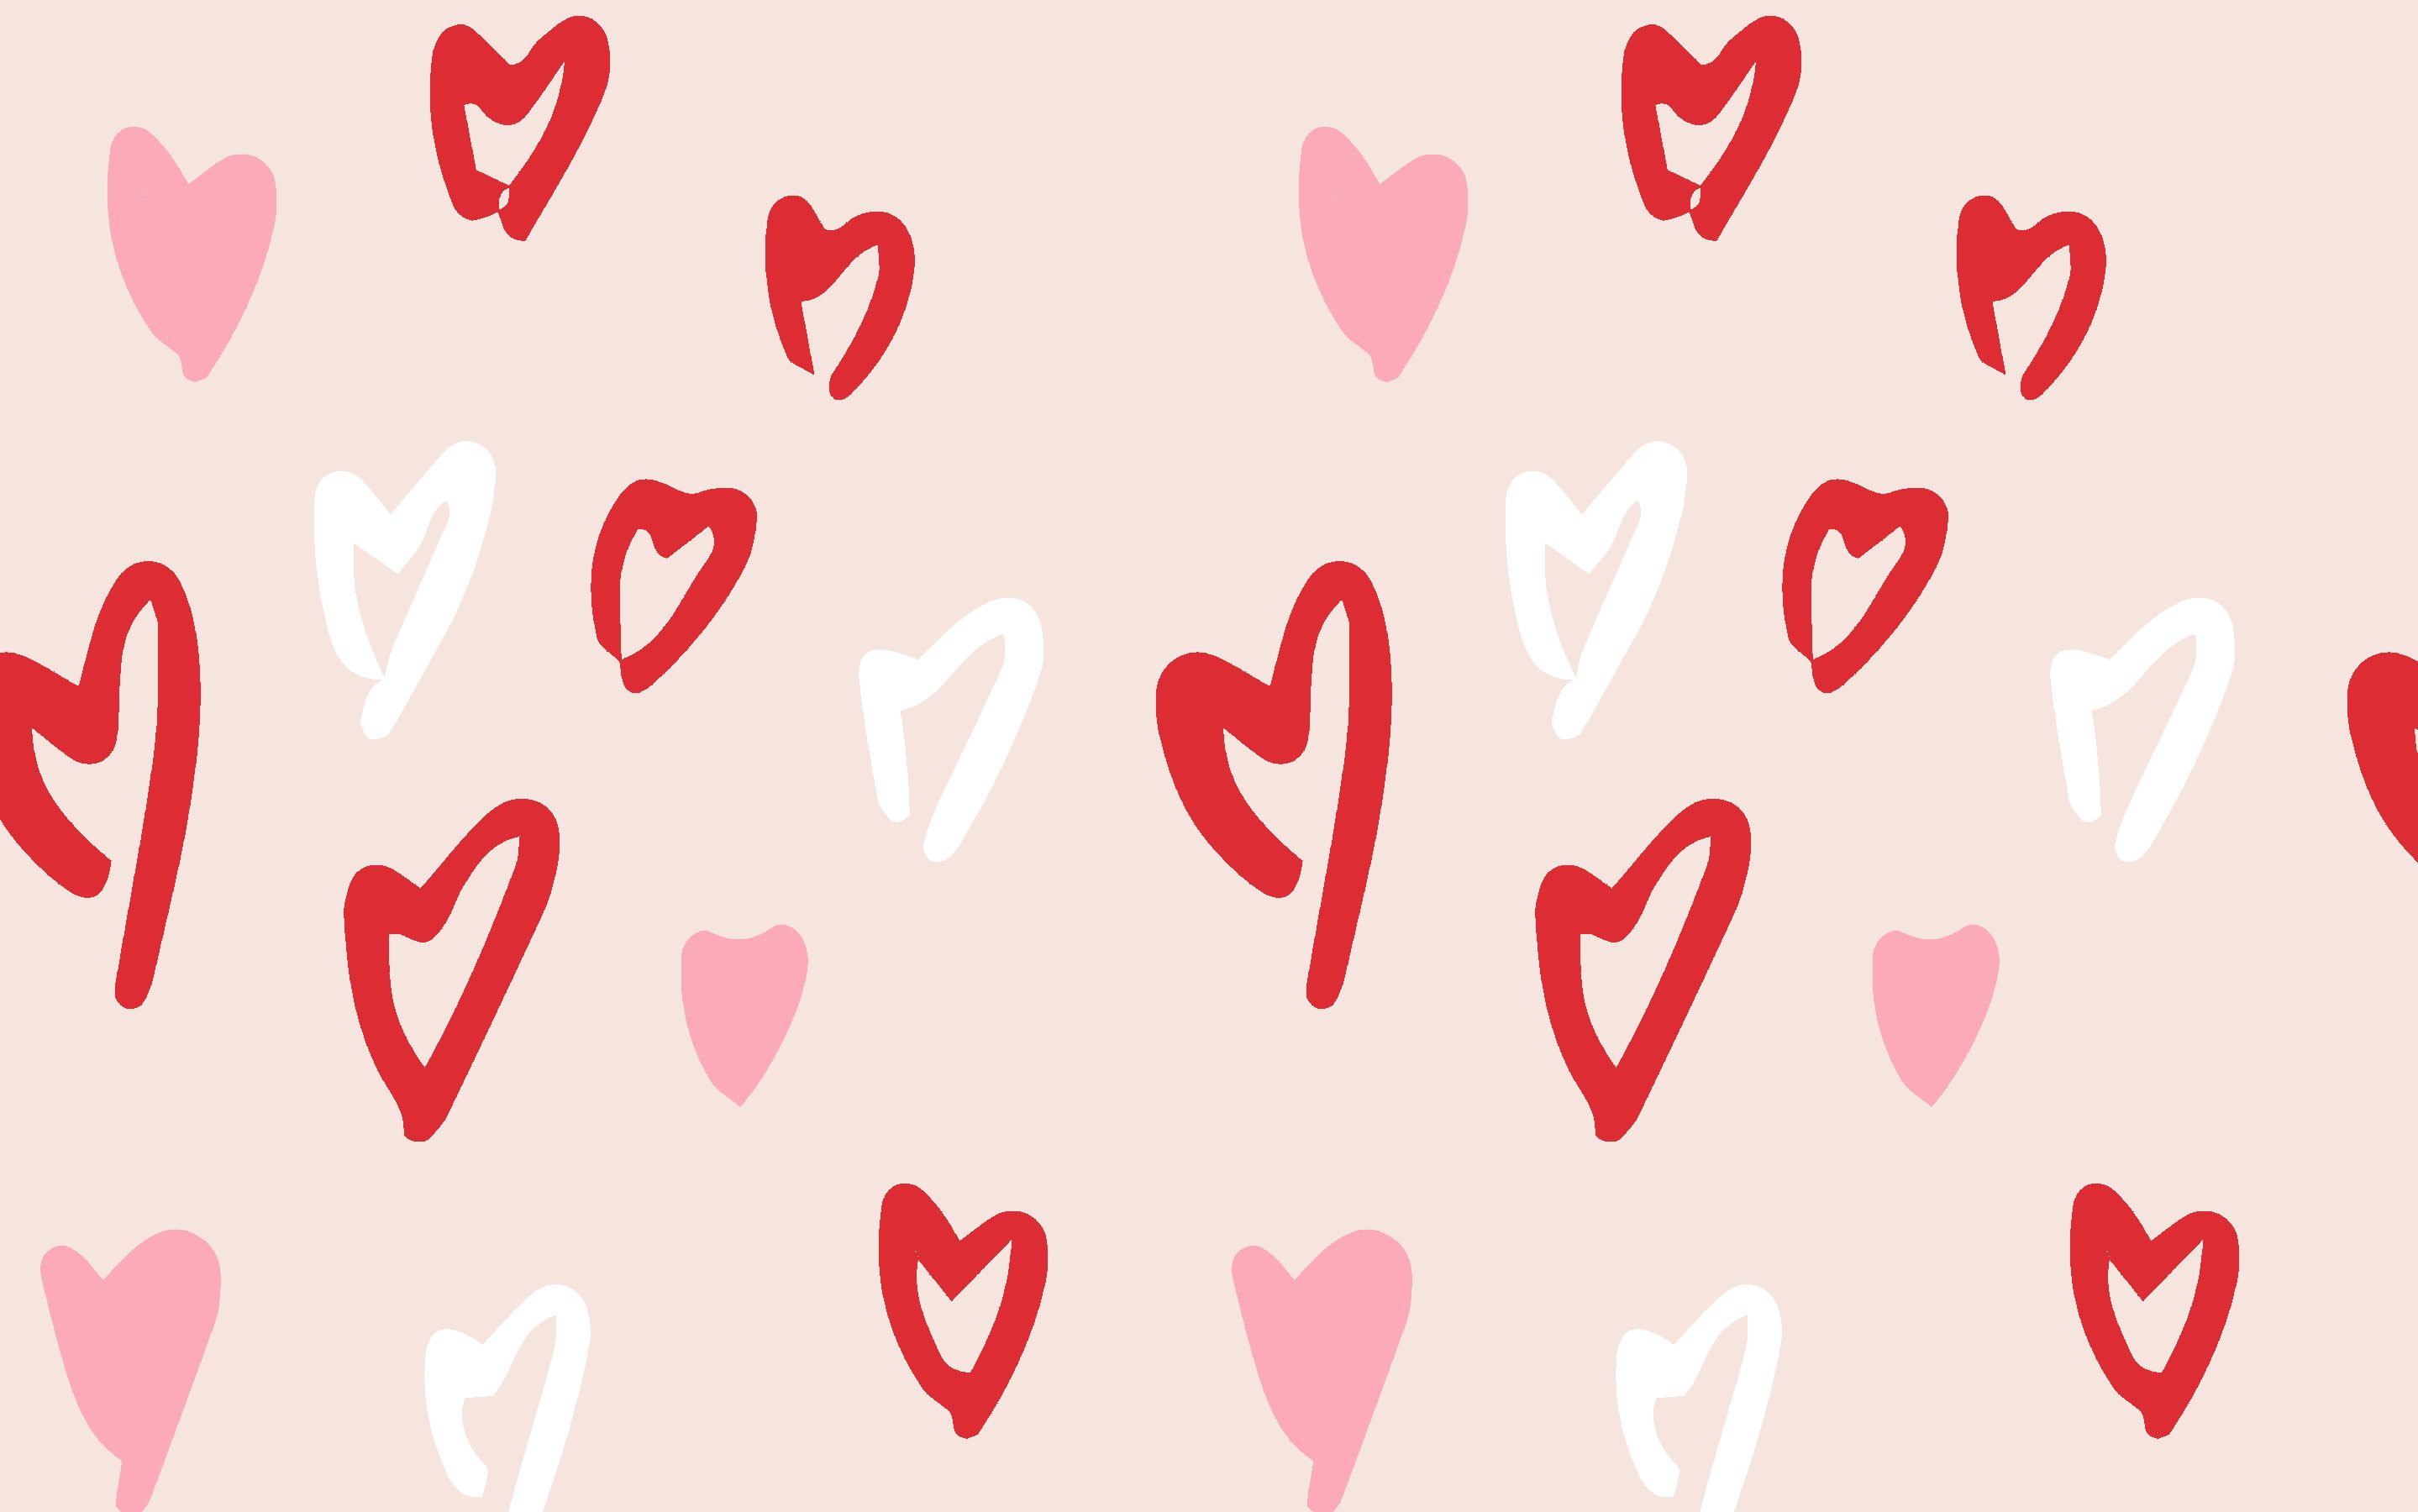 Free Valentine S Day Heart Wallpapers For Your Desktop Or Phone Heart Wallpaper Valentines Day Background Valentines Day Hearts